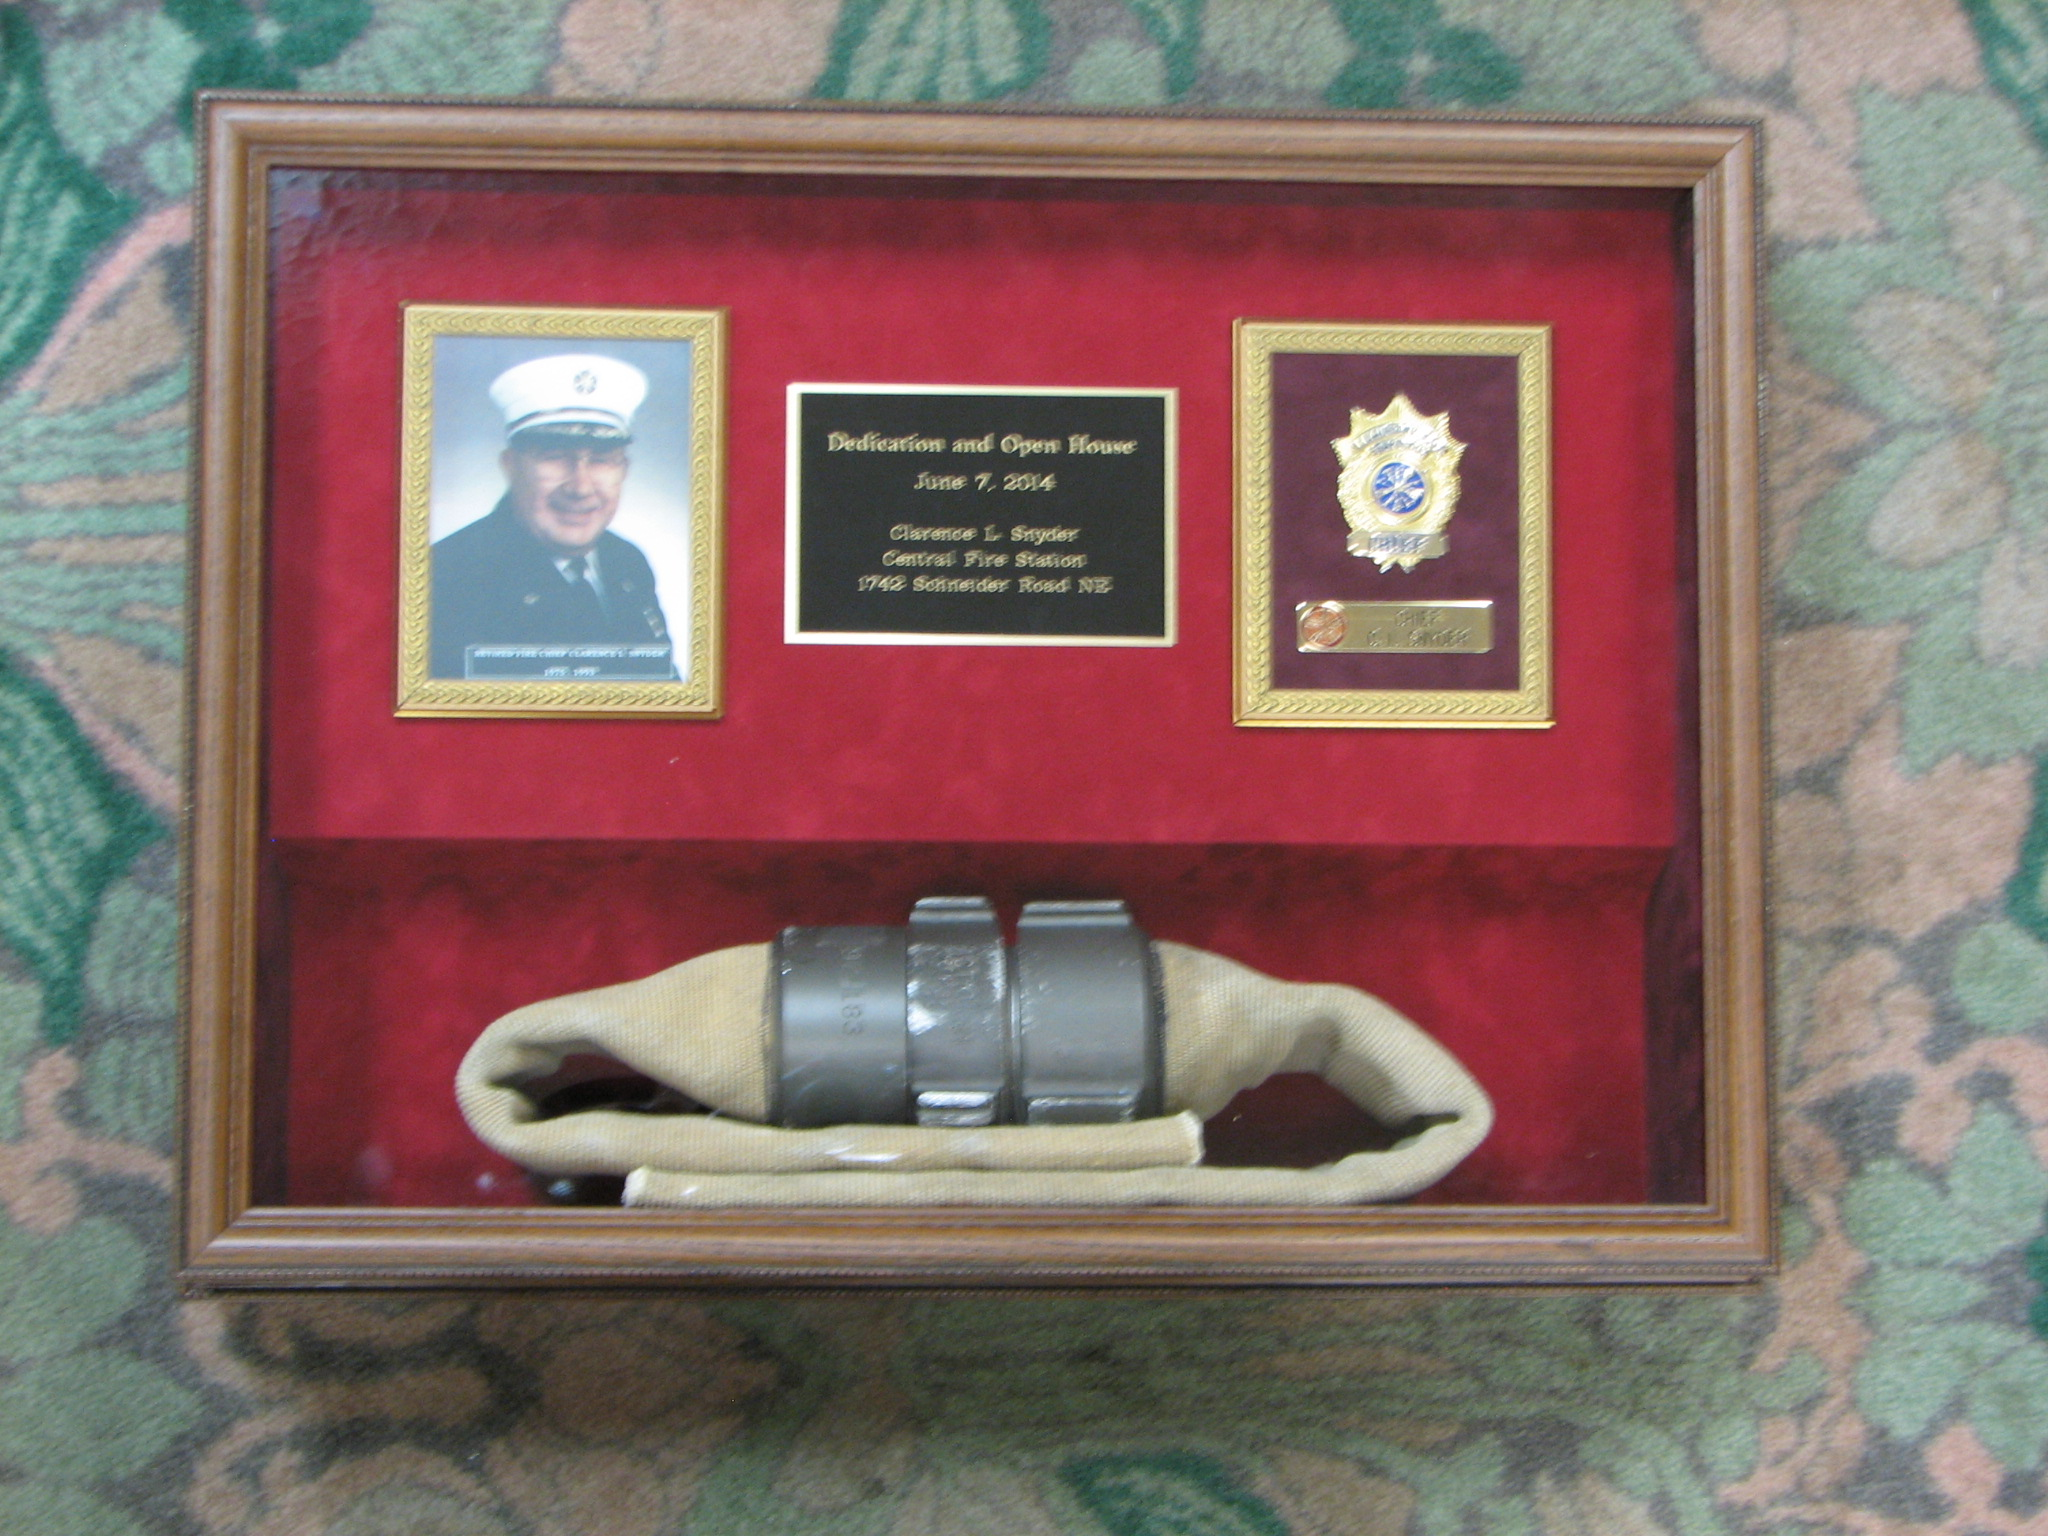 Middlebranch road Plain Township Fire Chief retirement recognition